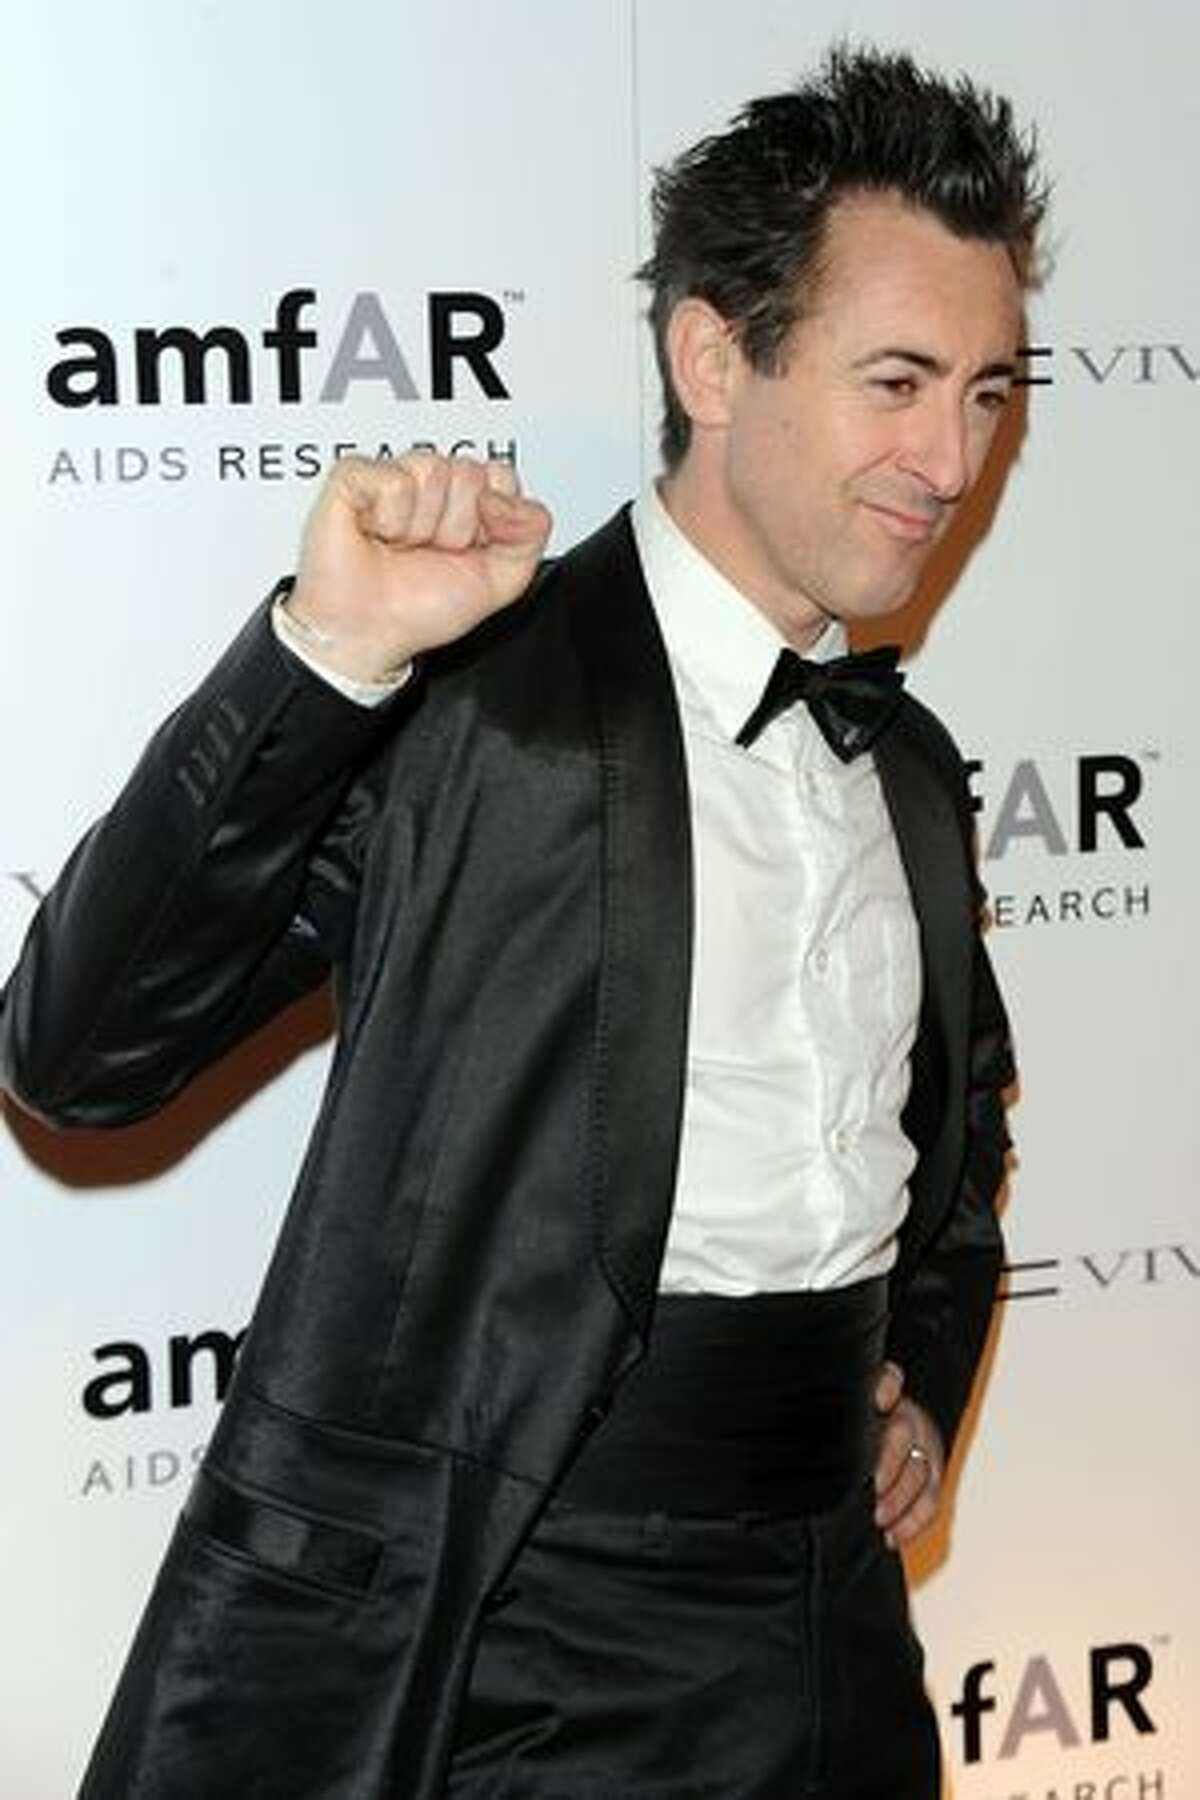 Actor Alan Cumming attends the amfAR New York Gala co-sponsored by M.A.C. Cosmetics to Kick Off Fall 2010 Fashion Week at Cipriani 42nd Street in New York, New York.